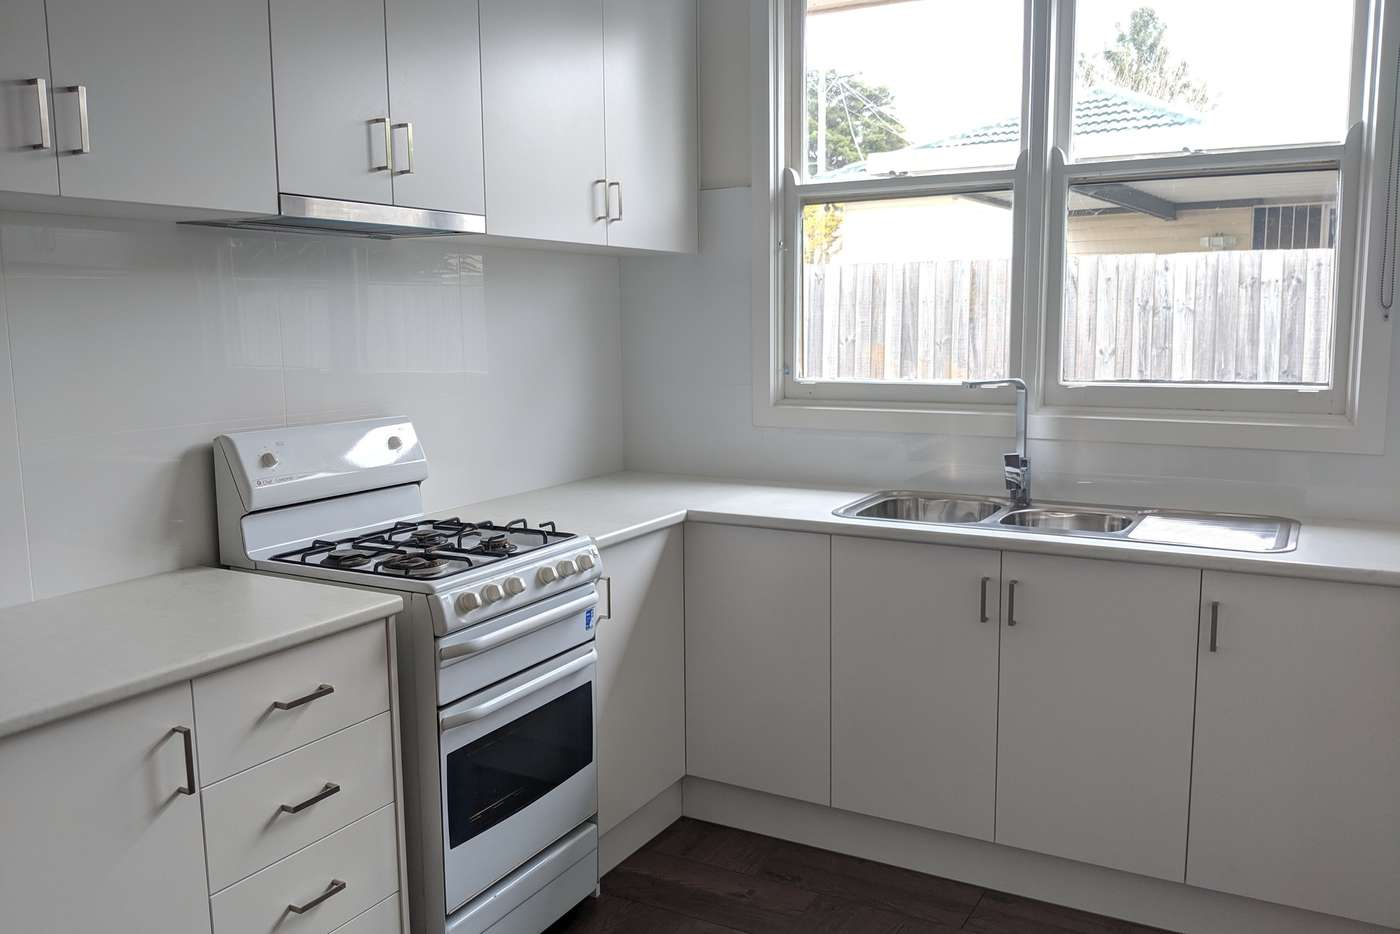 Main view of Homely house listing, 1/4 Pine Street, Thomastown VIC 3074